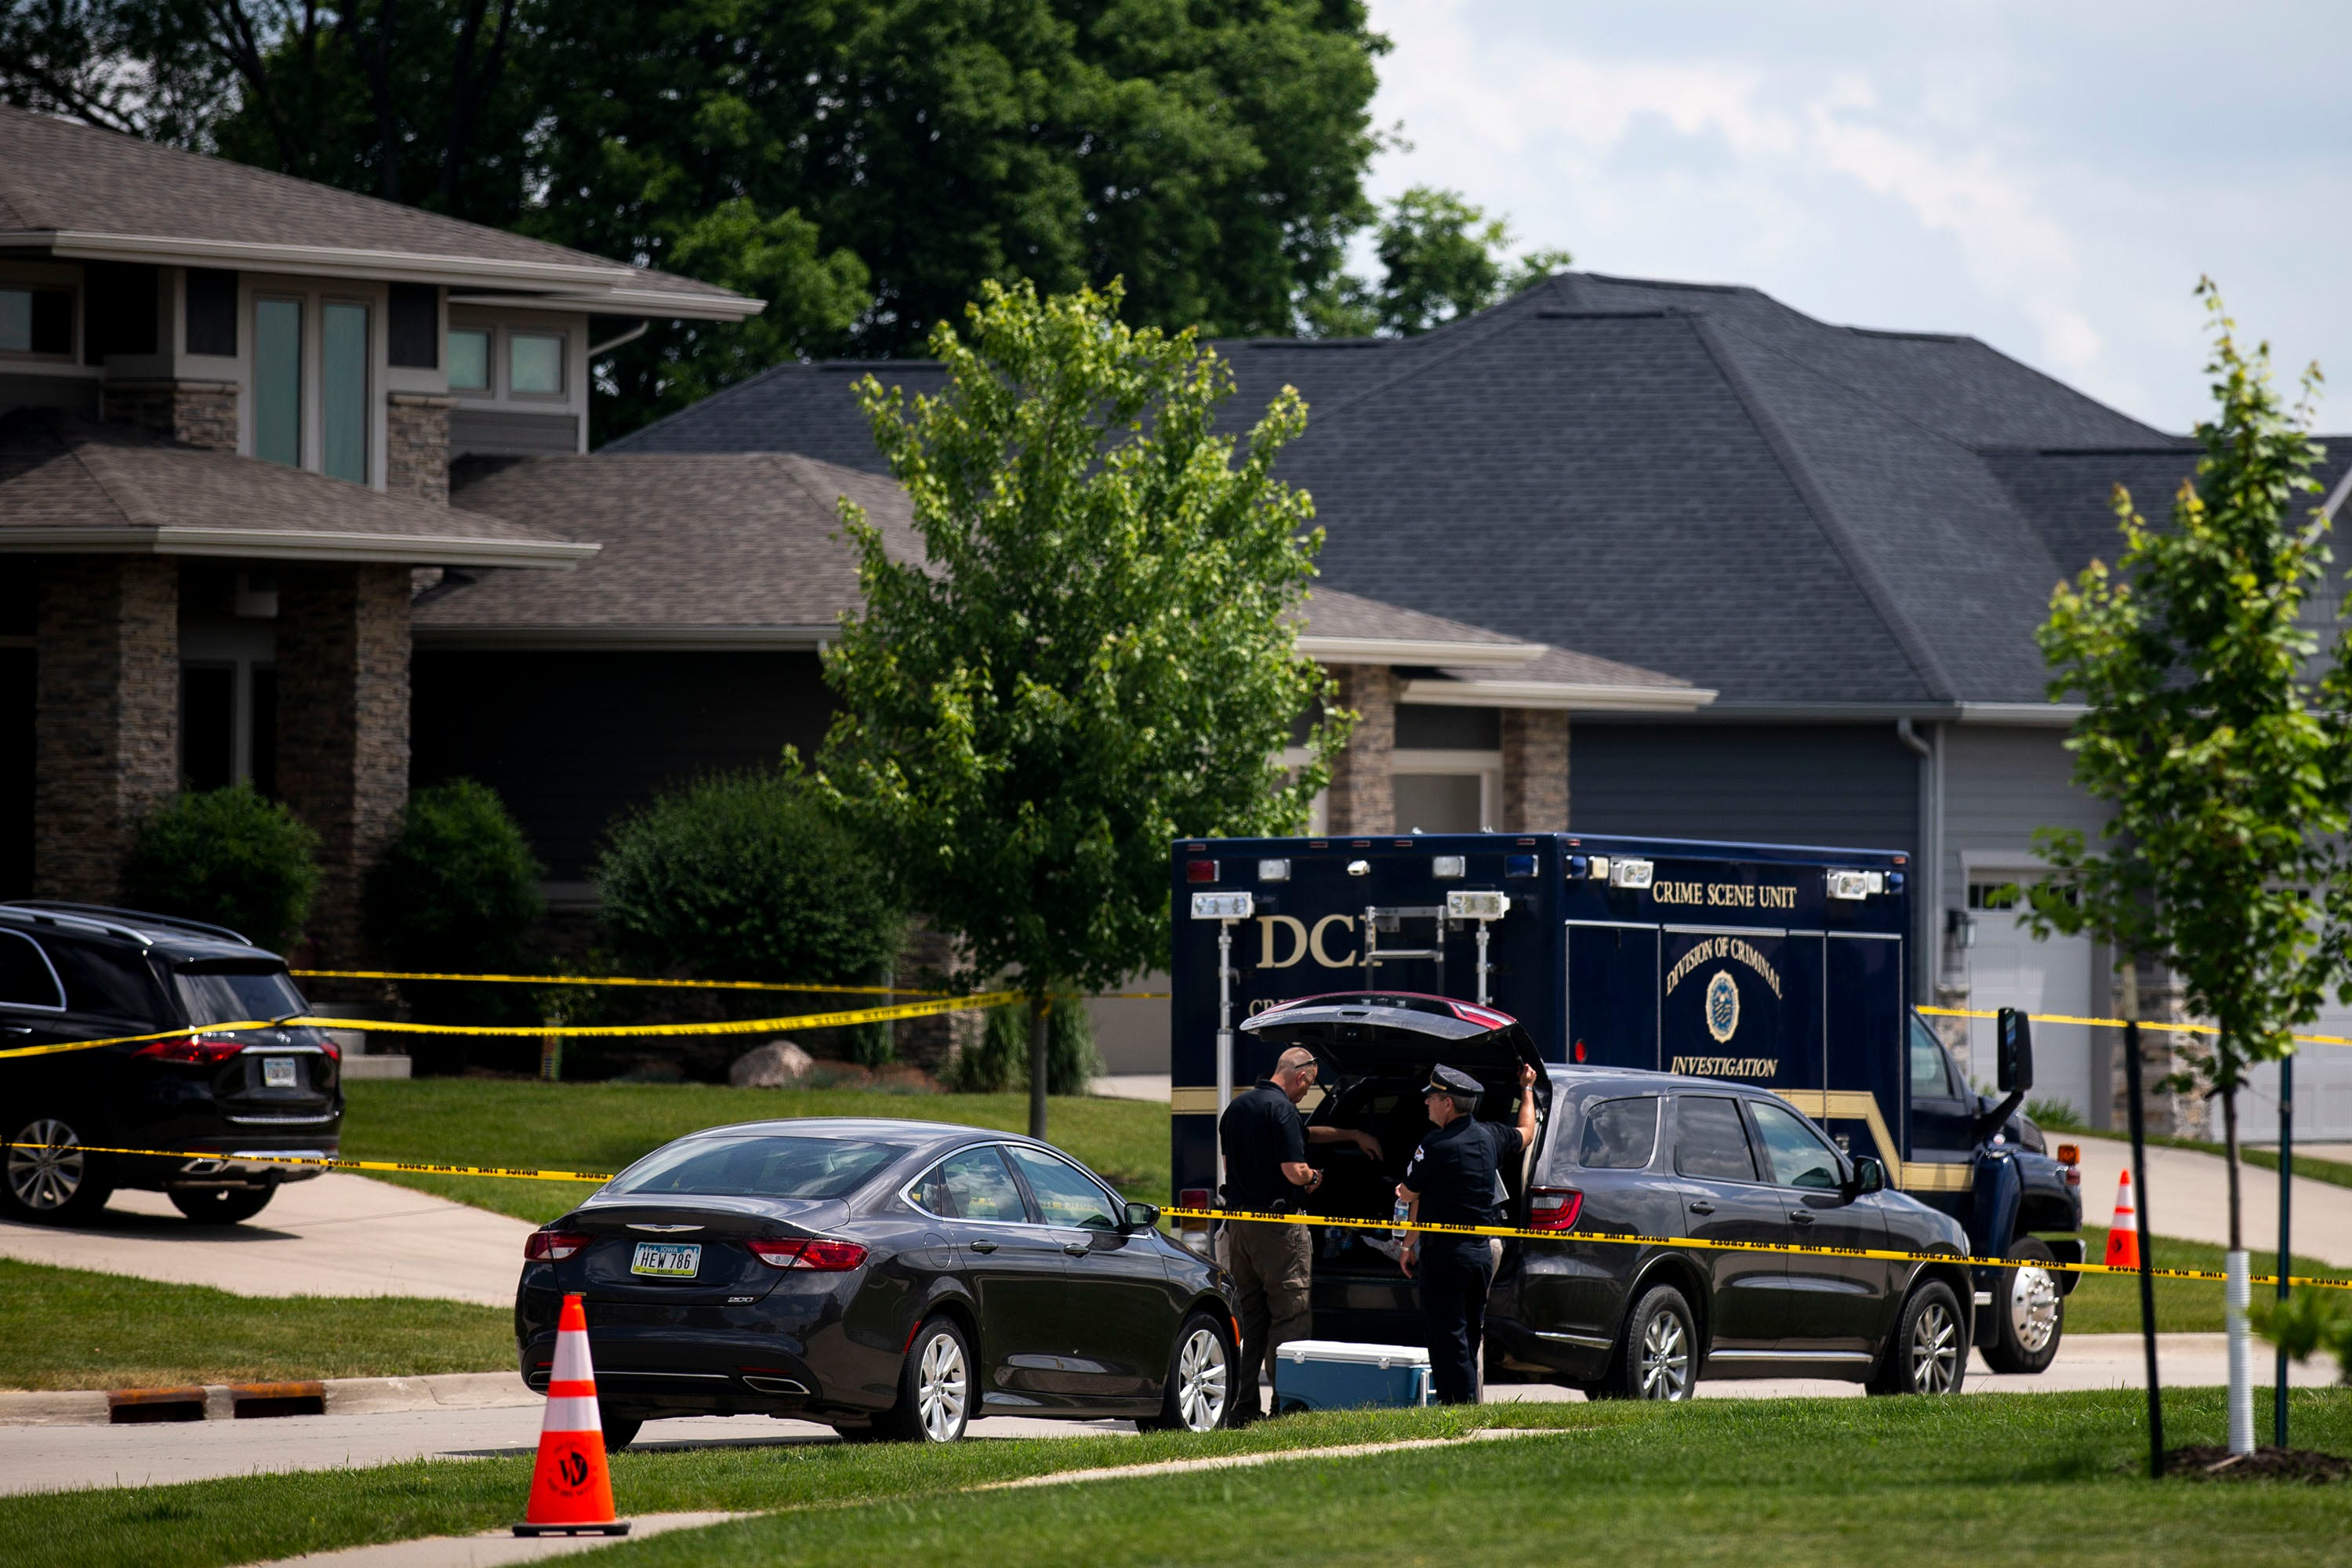 4 bodies found in West Des Moines home suffered gunshot wounds